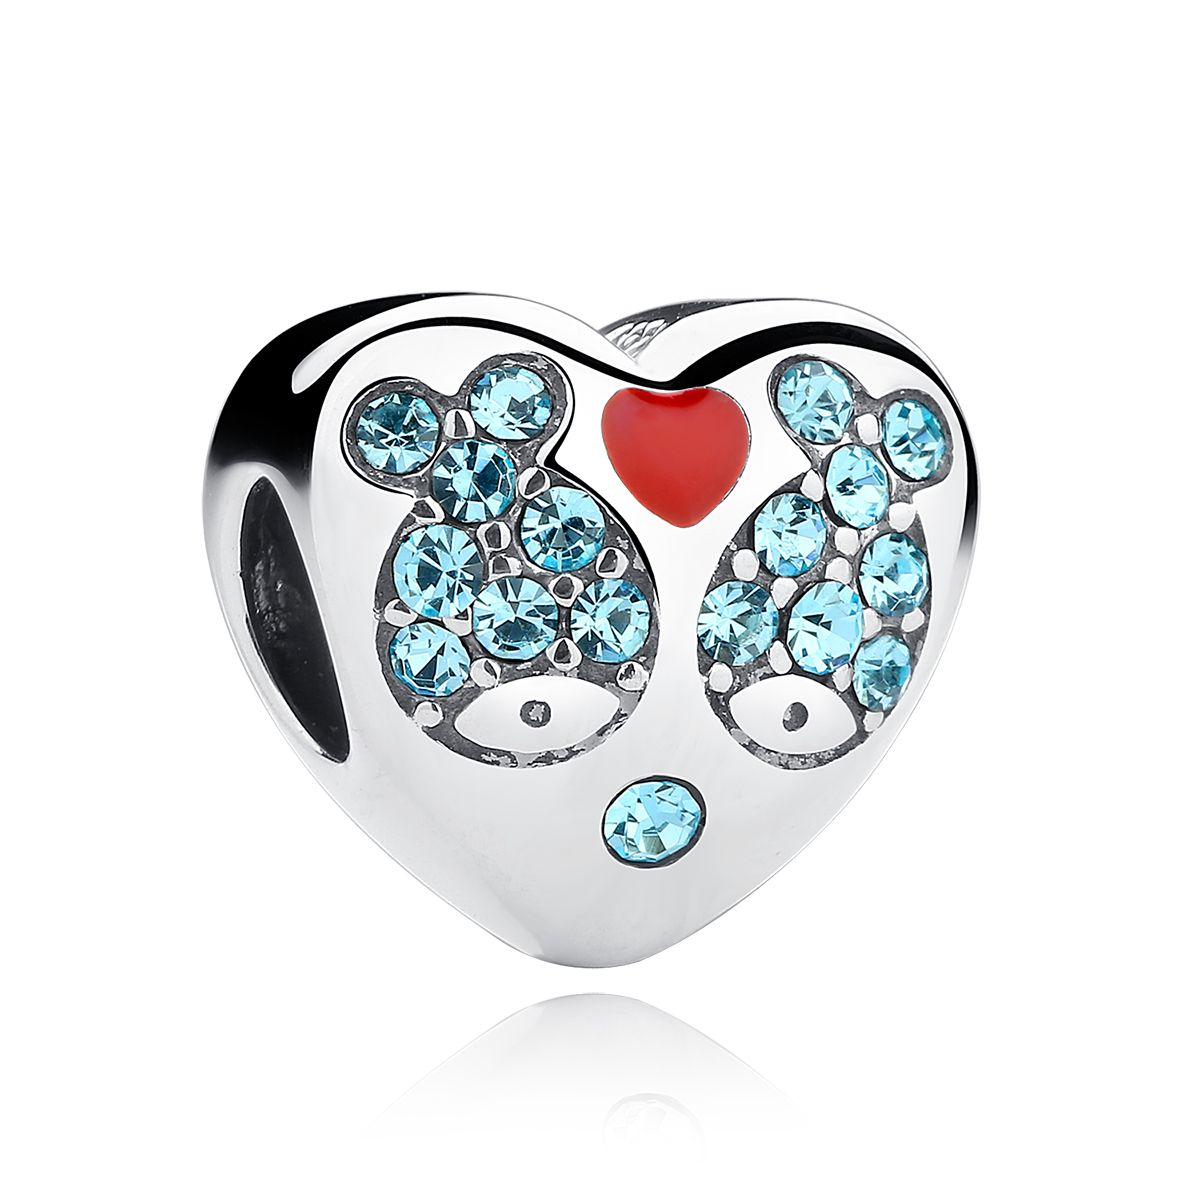 Motherus day gifts sterling silver heart shape red drip bead